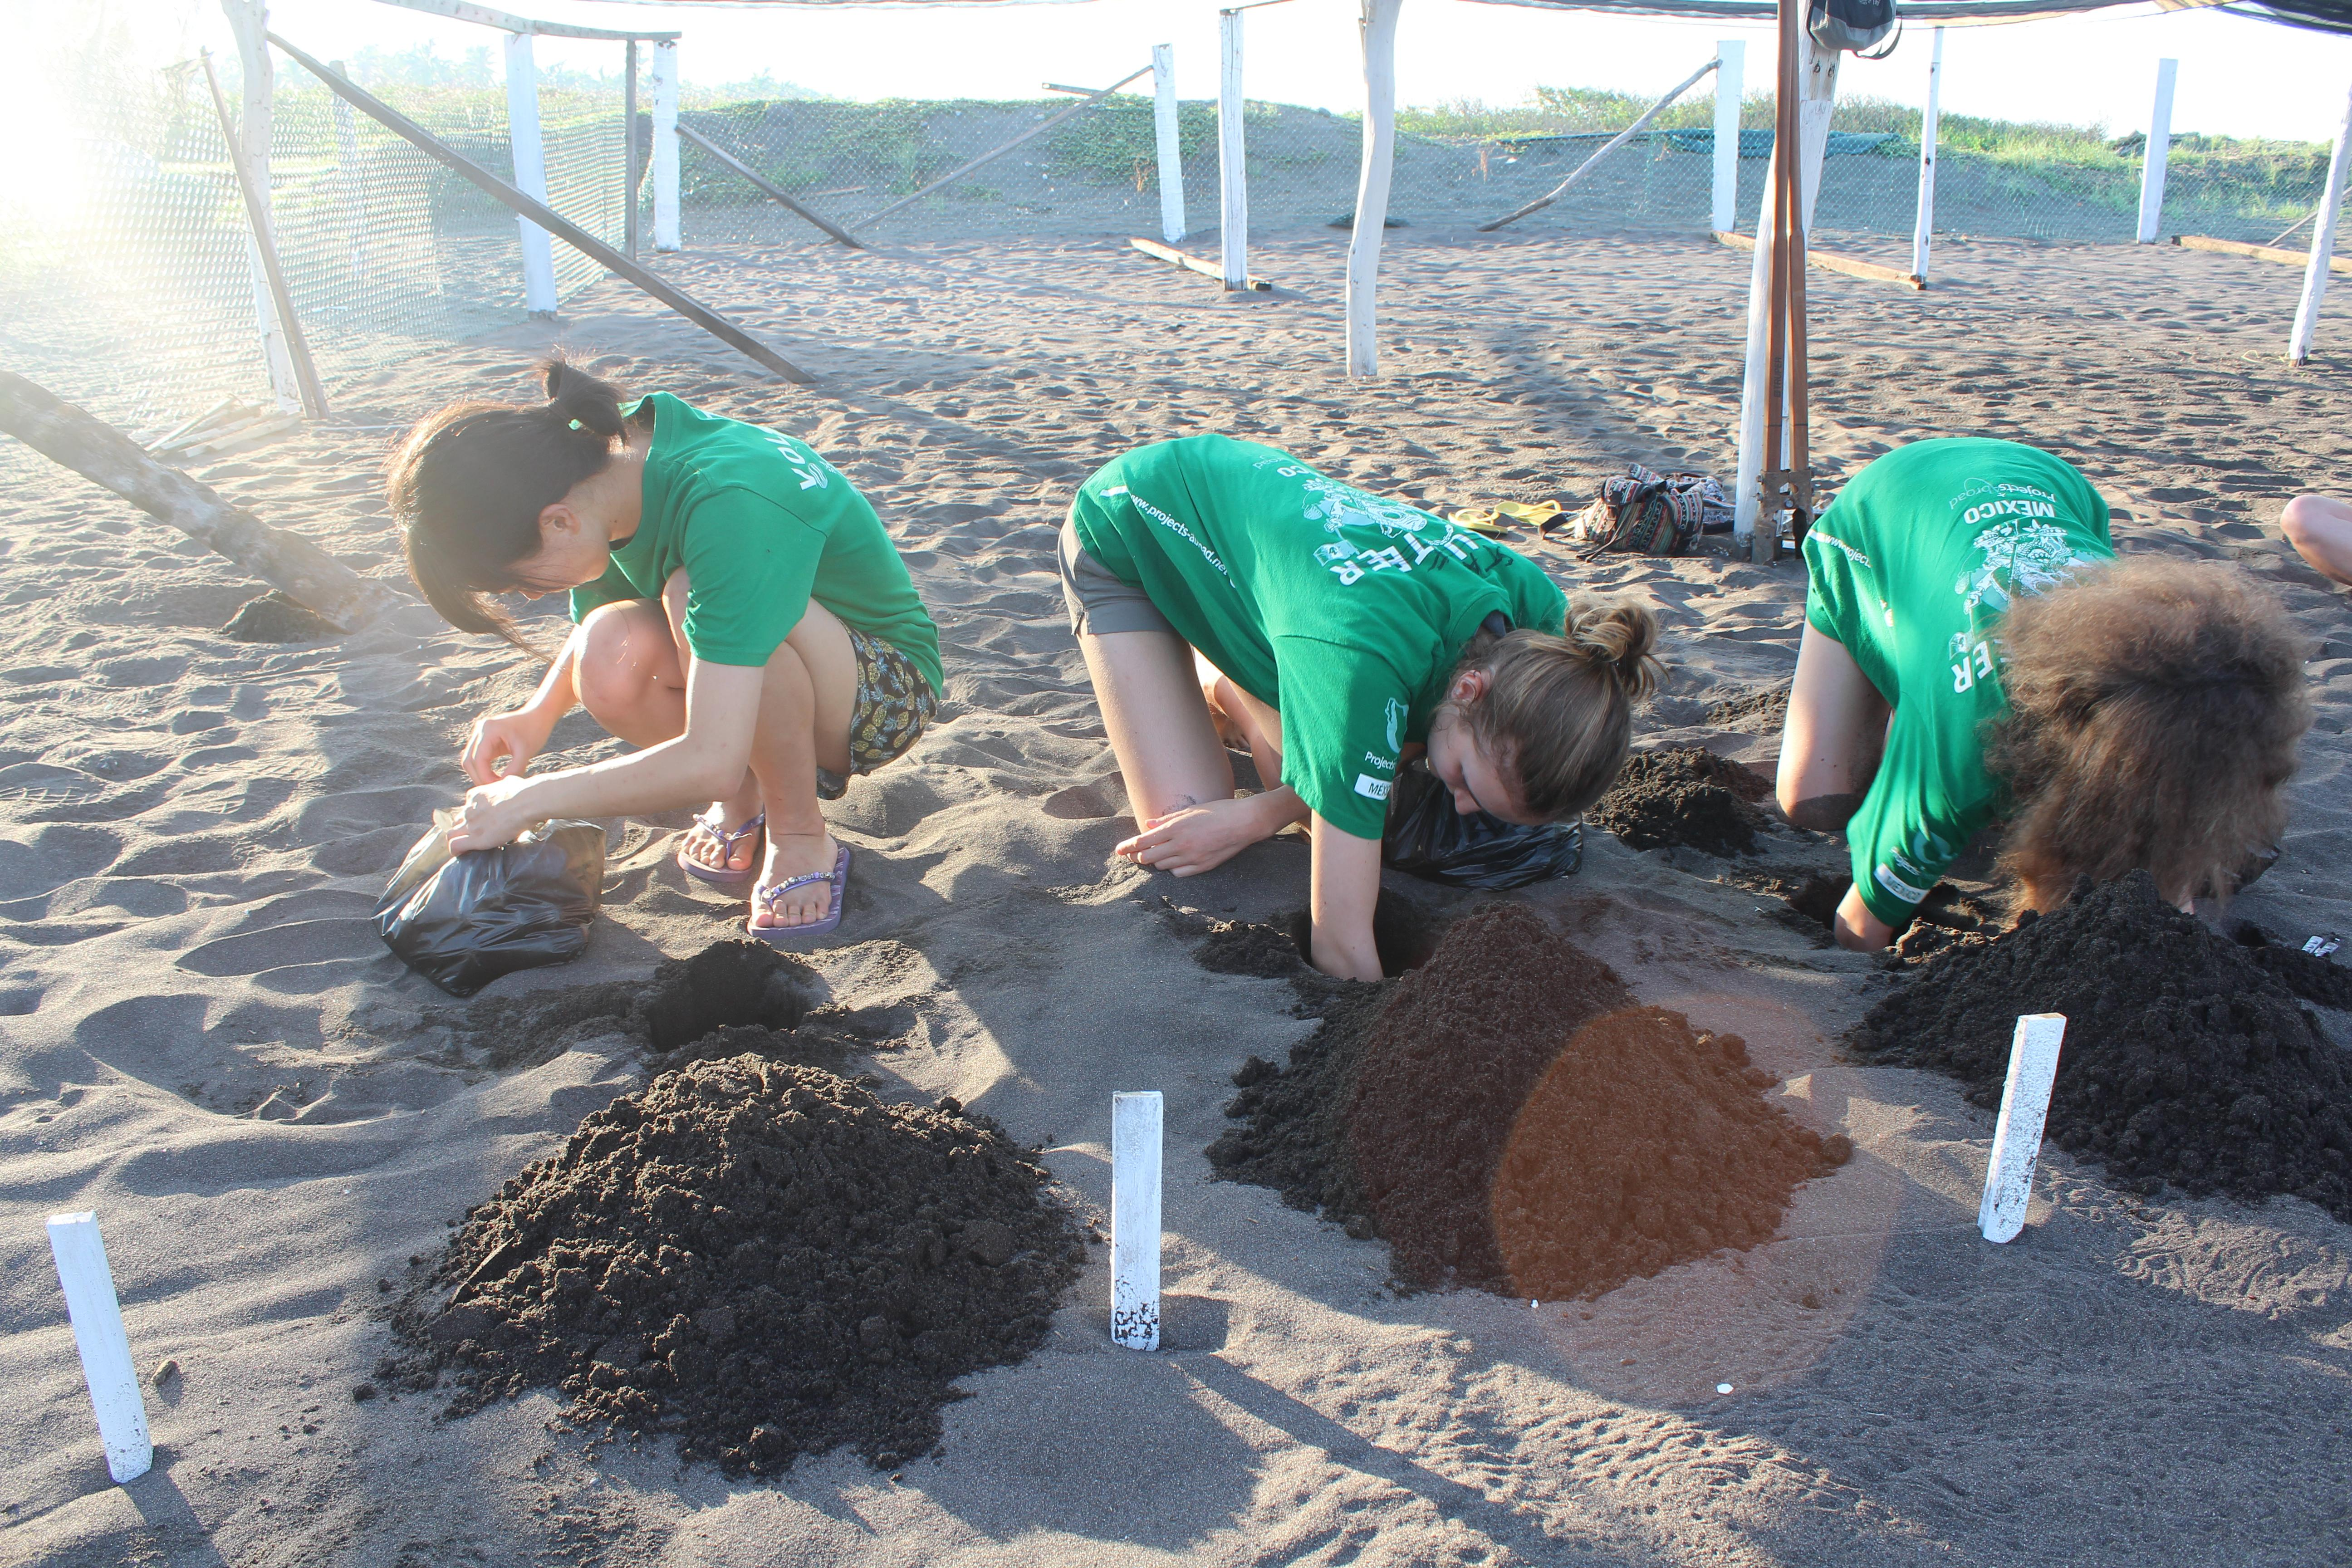 Projects Abroad High School Special volunteers dig holes for turtle eggs in Mexico at the Conservation Project